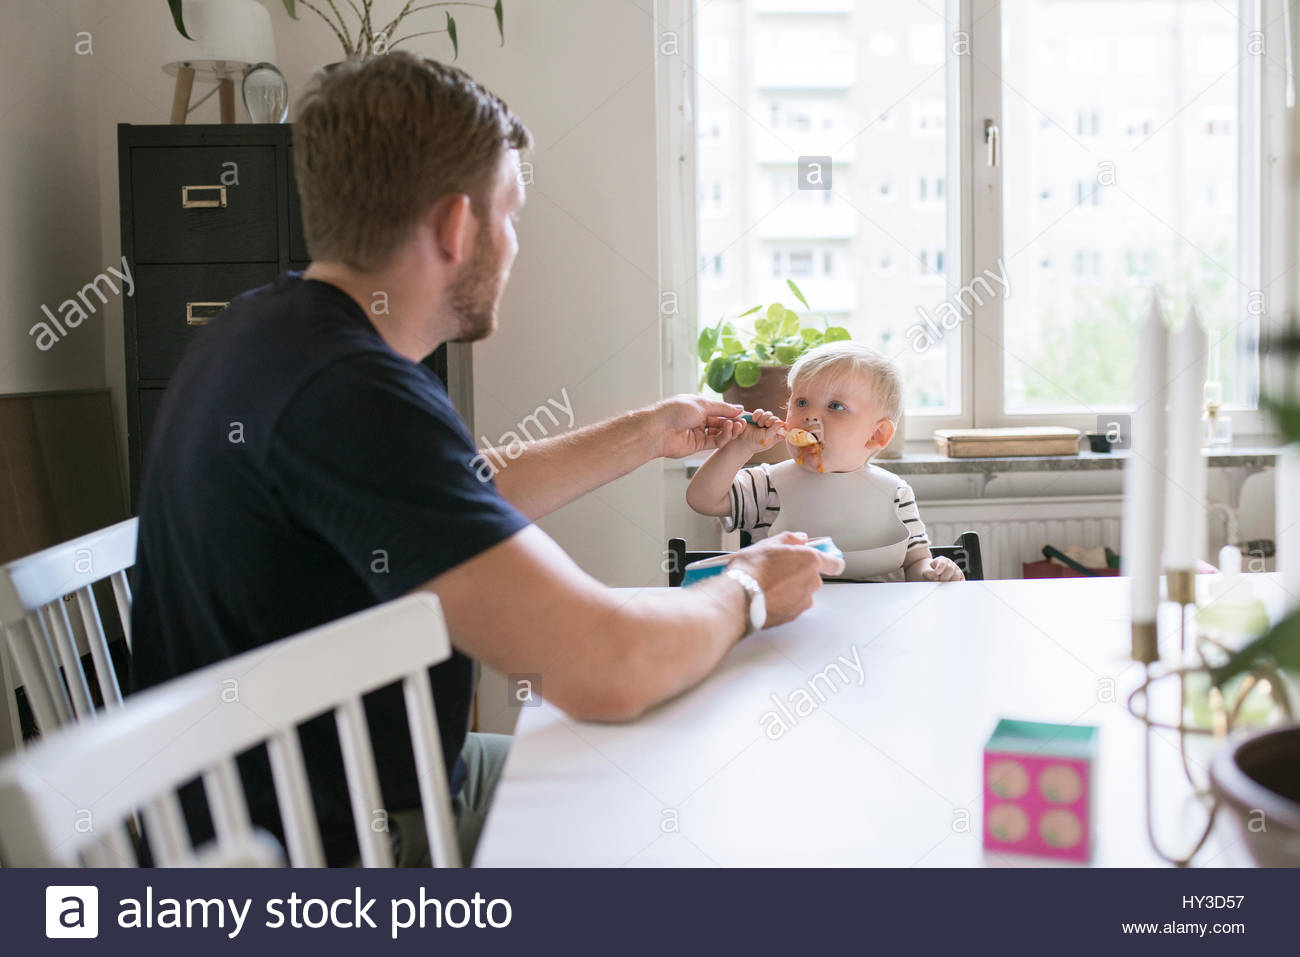 Sweden, Father helping son (12-17 months) eating at table - Stock Image